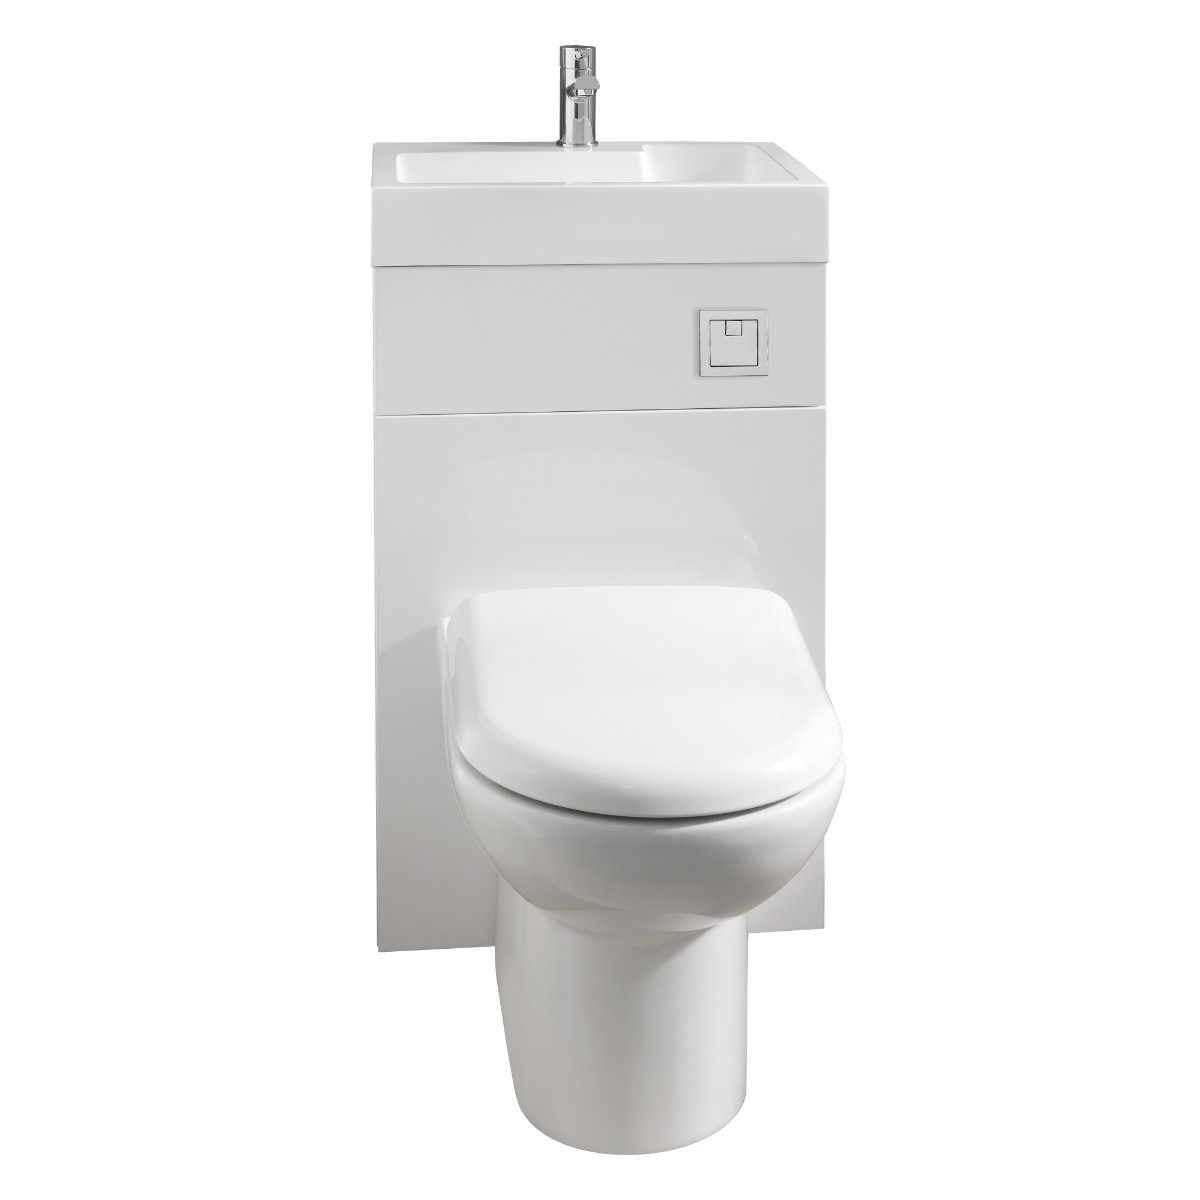 premier athena two in one vanity and toilet unit gloss white 500mm prc145cb bathroom supastore 31 jpg